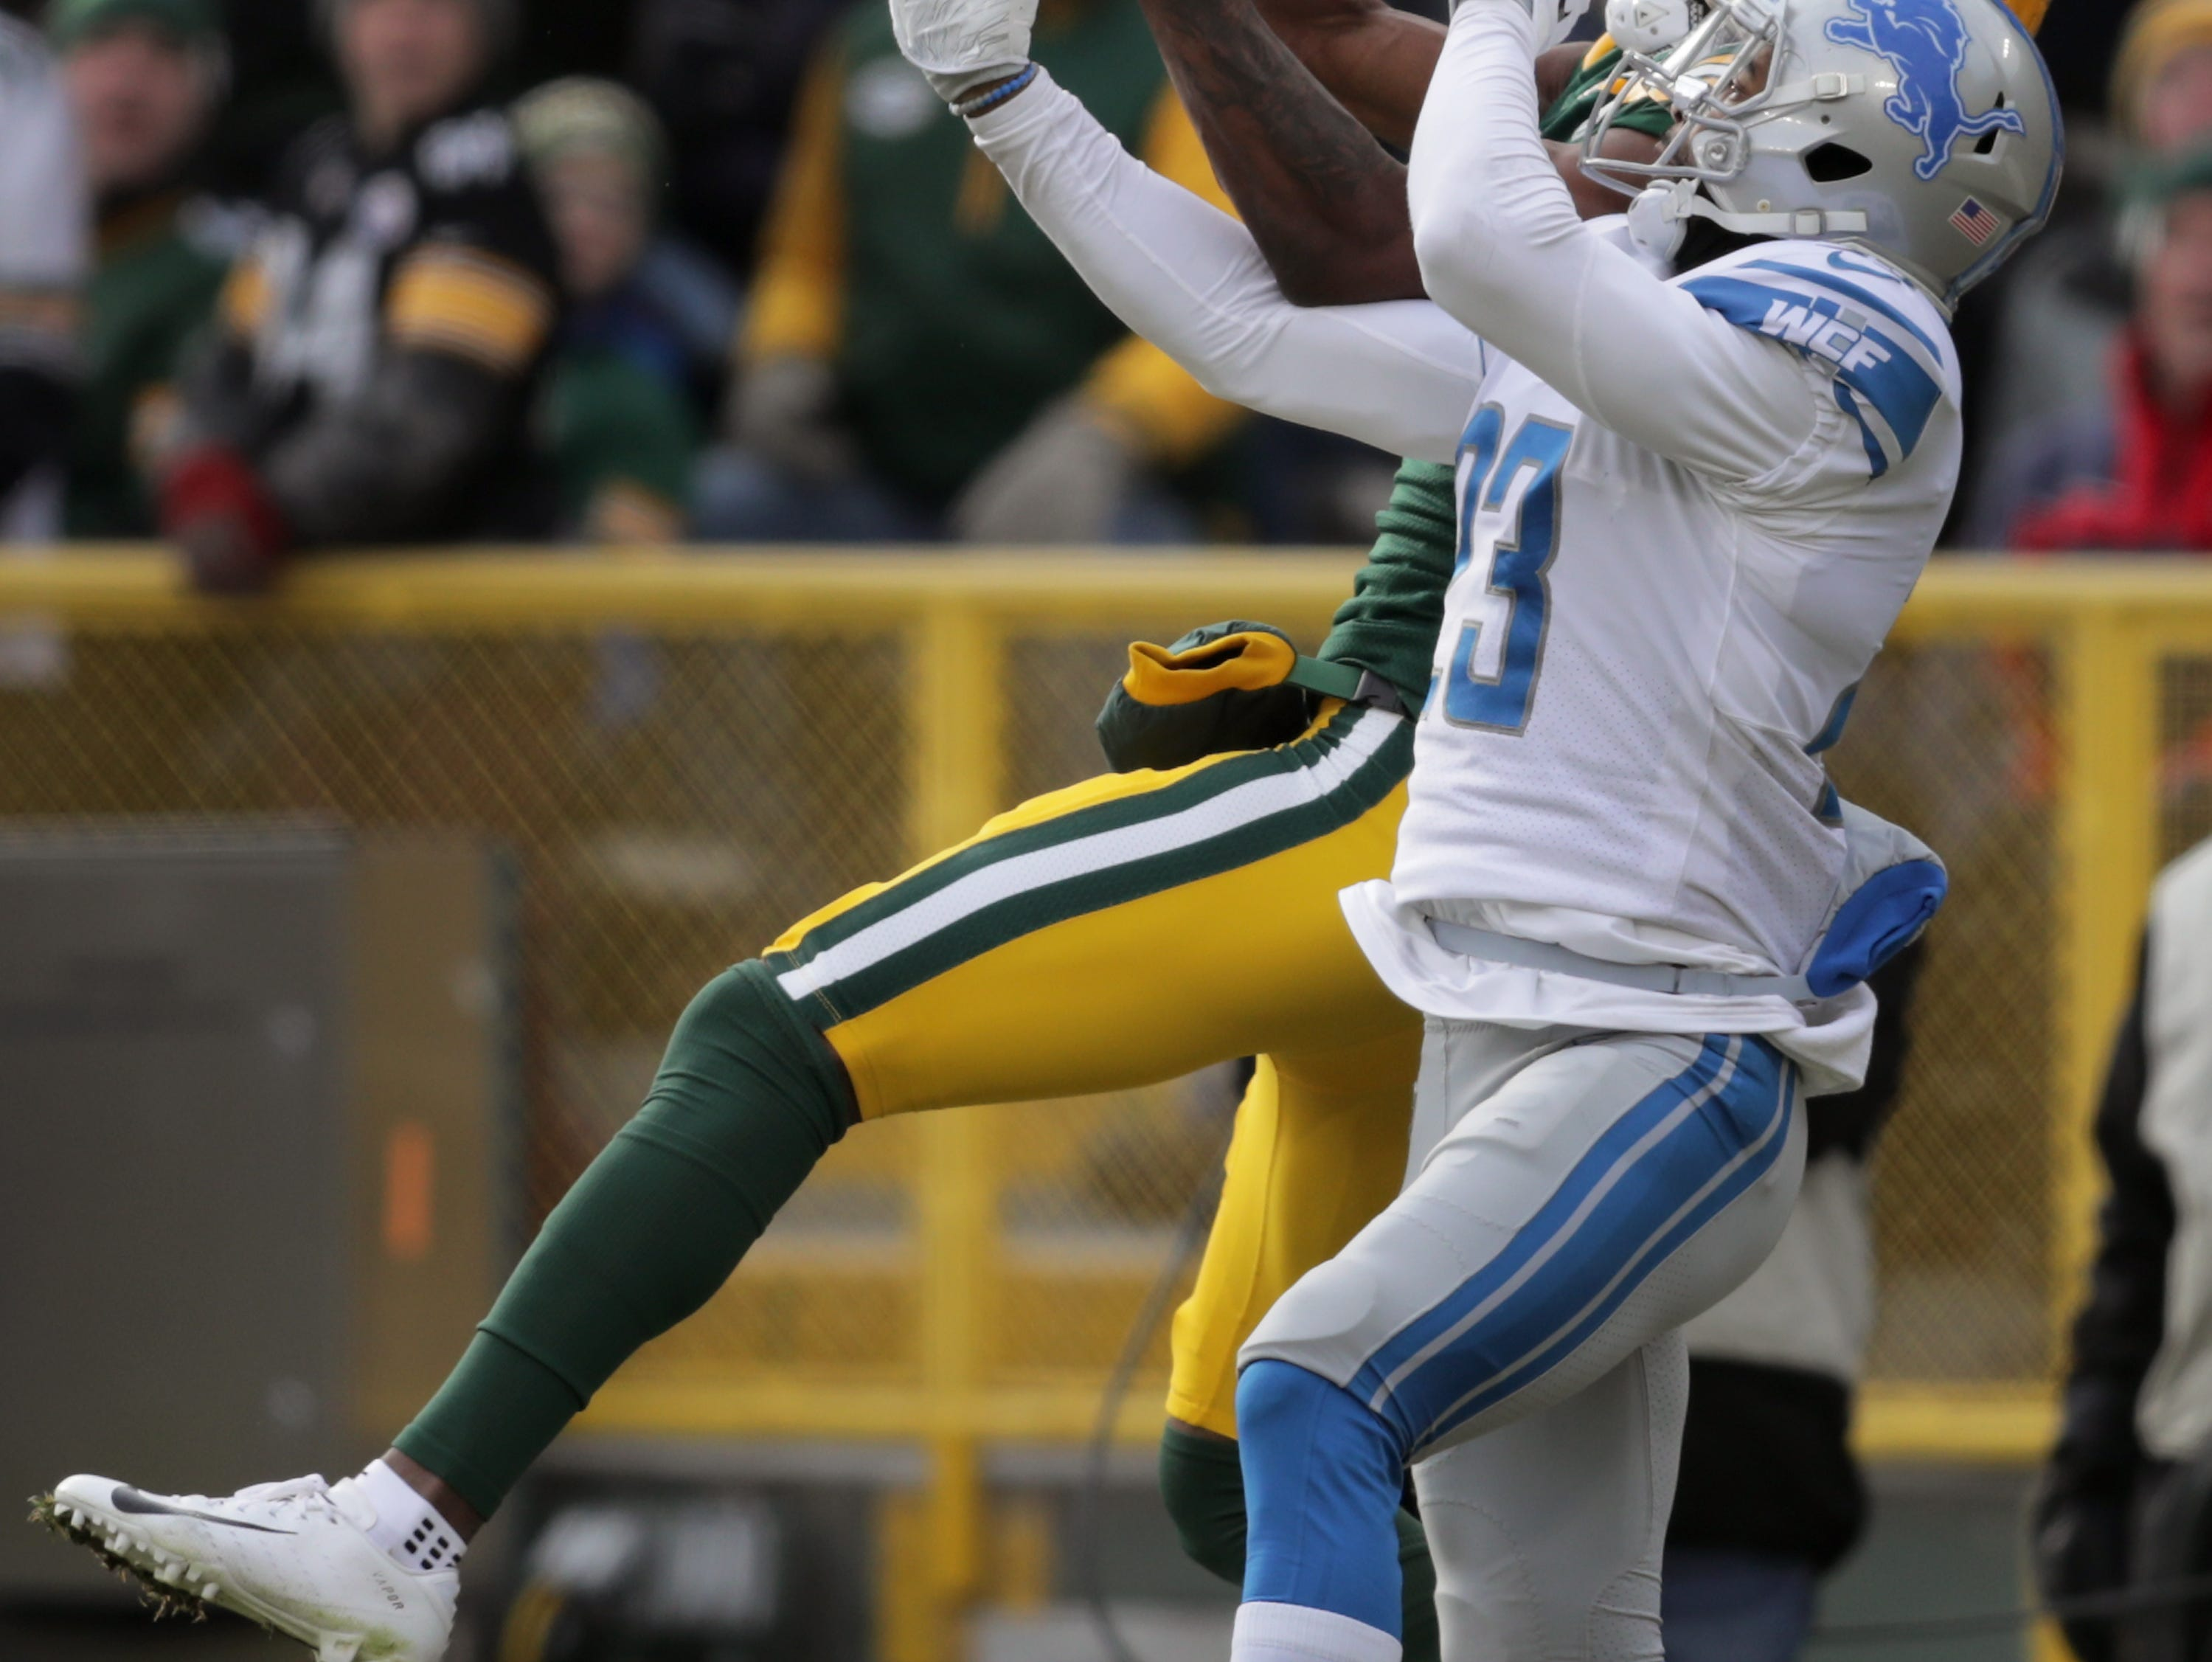 Green Bay Packers wide receiver Marquez Valdes-Scantling battles for na second half pass against Detroit Lions cornerback Darius Slay during their football game on Sunday, December 30, 2018, at Lambeau Field in Green Bay, Wis.Detroit defeated Green Bay 31 to 0. Wm. Glasheen/USA TODAY NETWORK-Wisconsin.